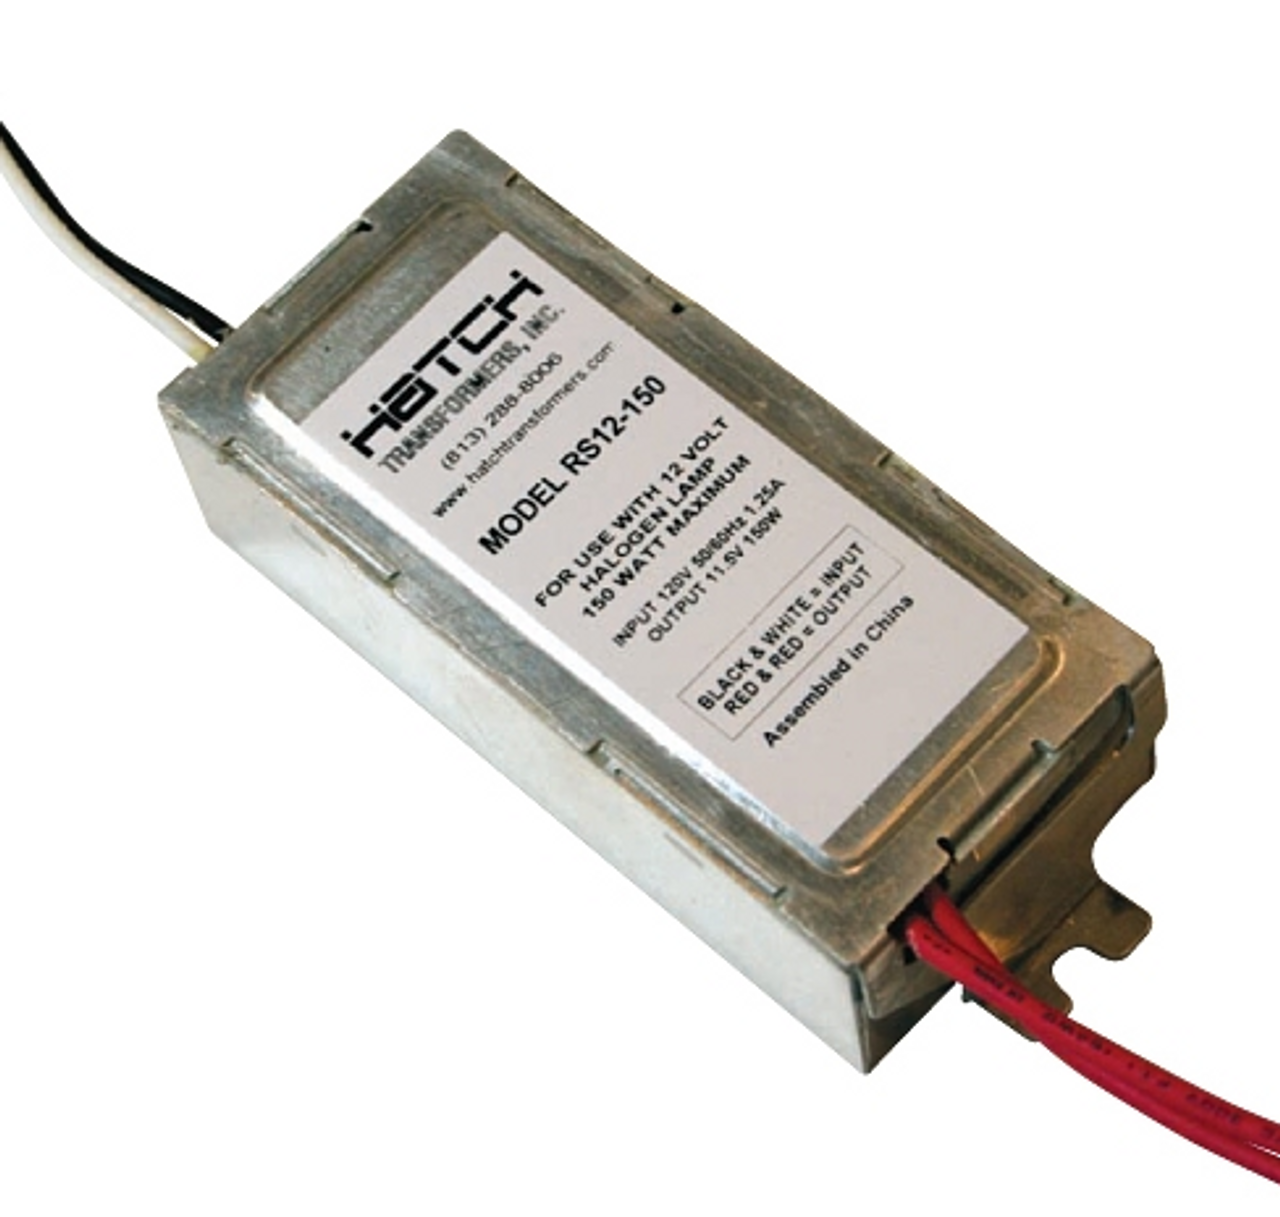 Hatch Rs12 150 Electronic Transformer 150w 12vac Side Exit Leads